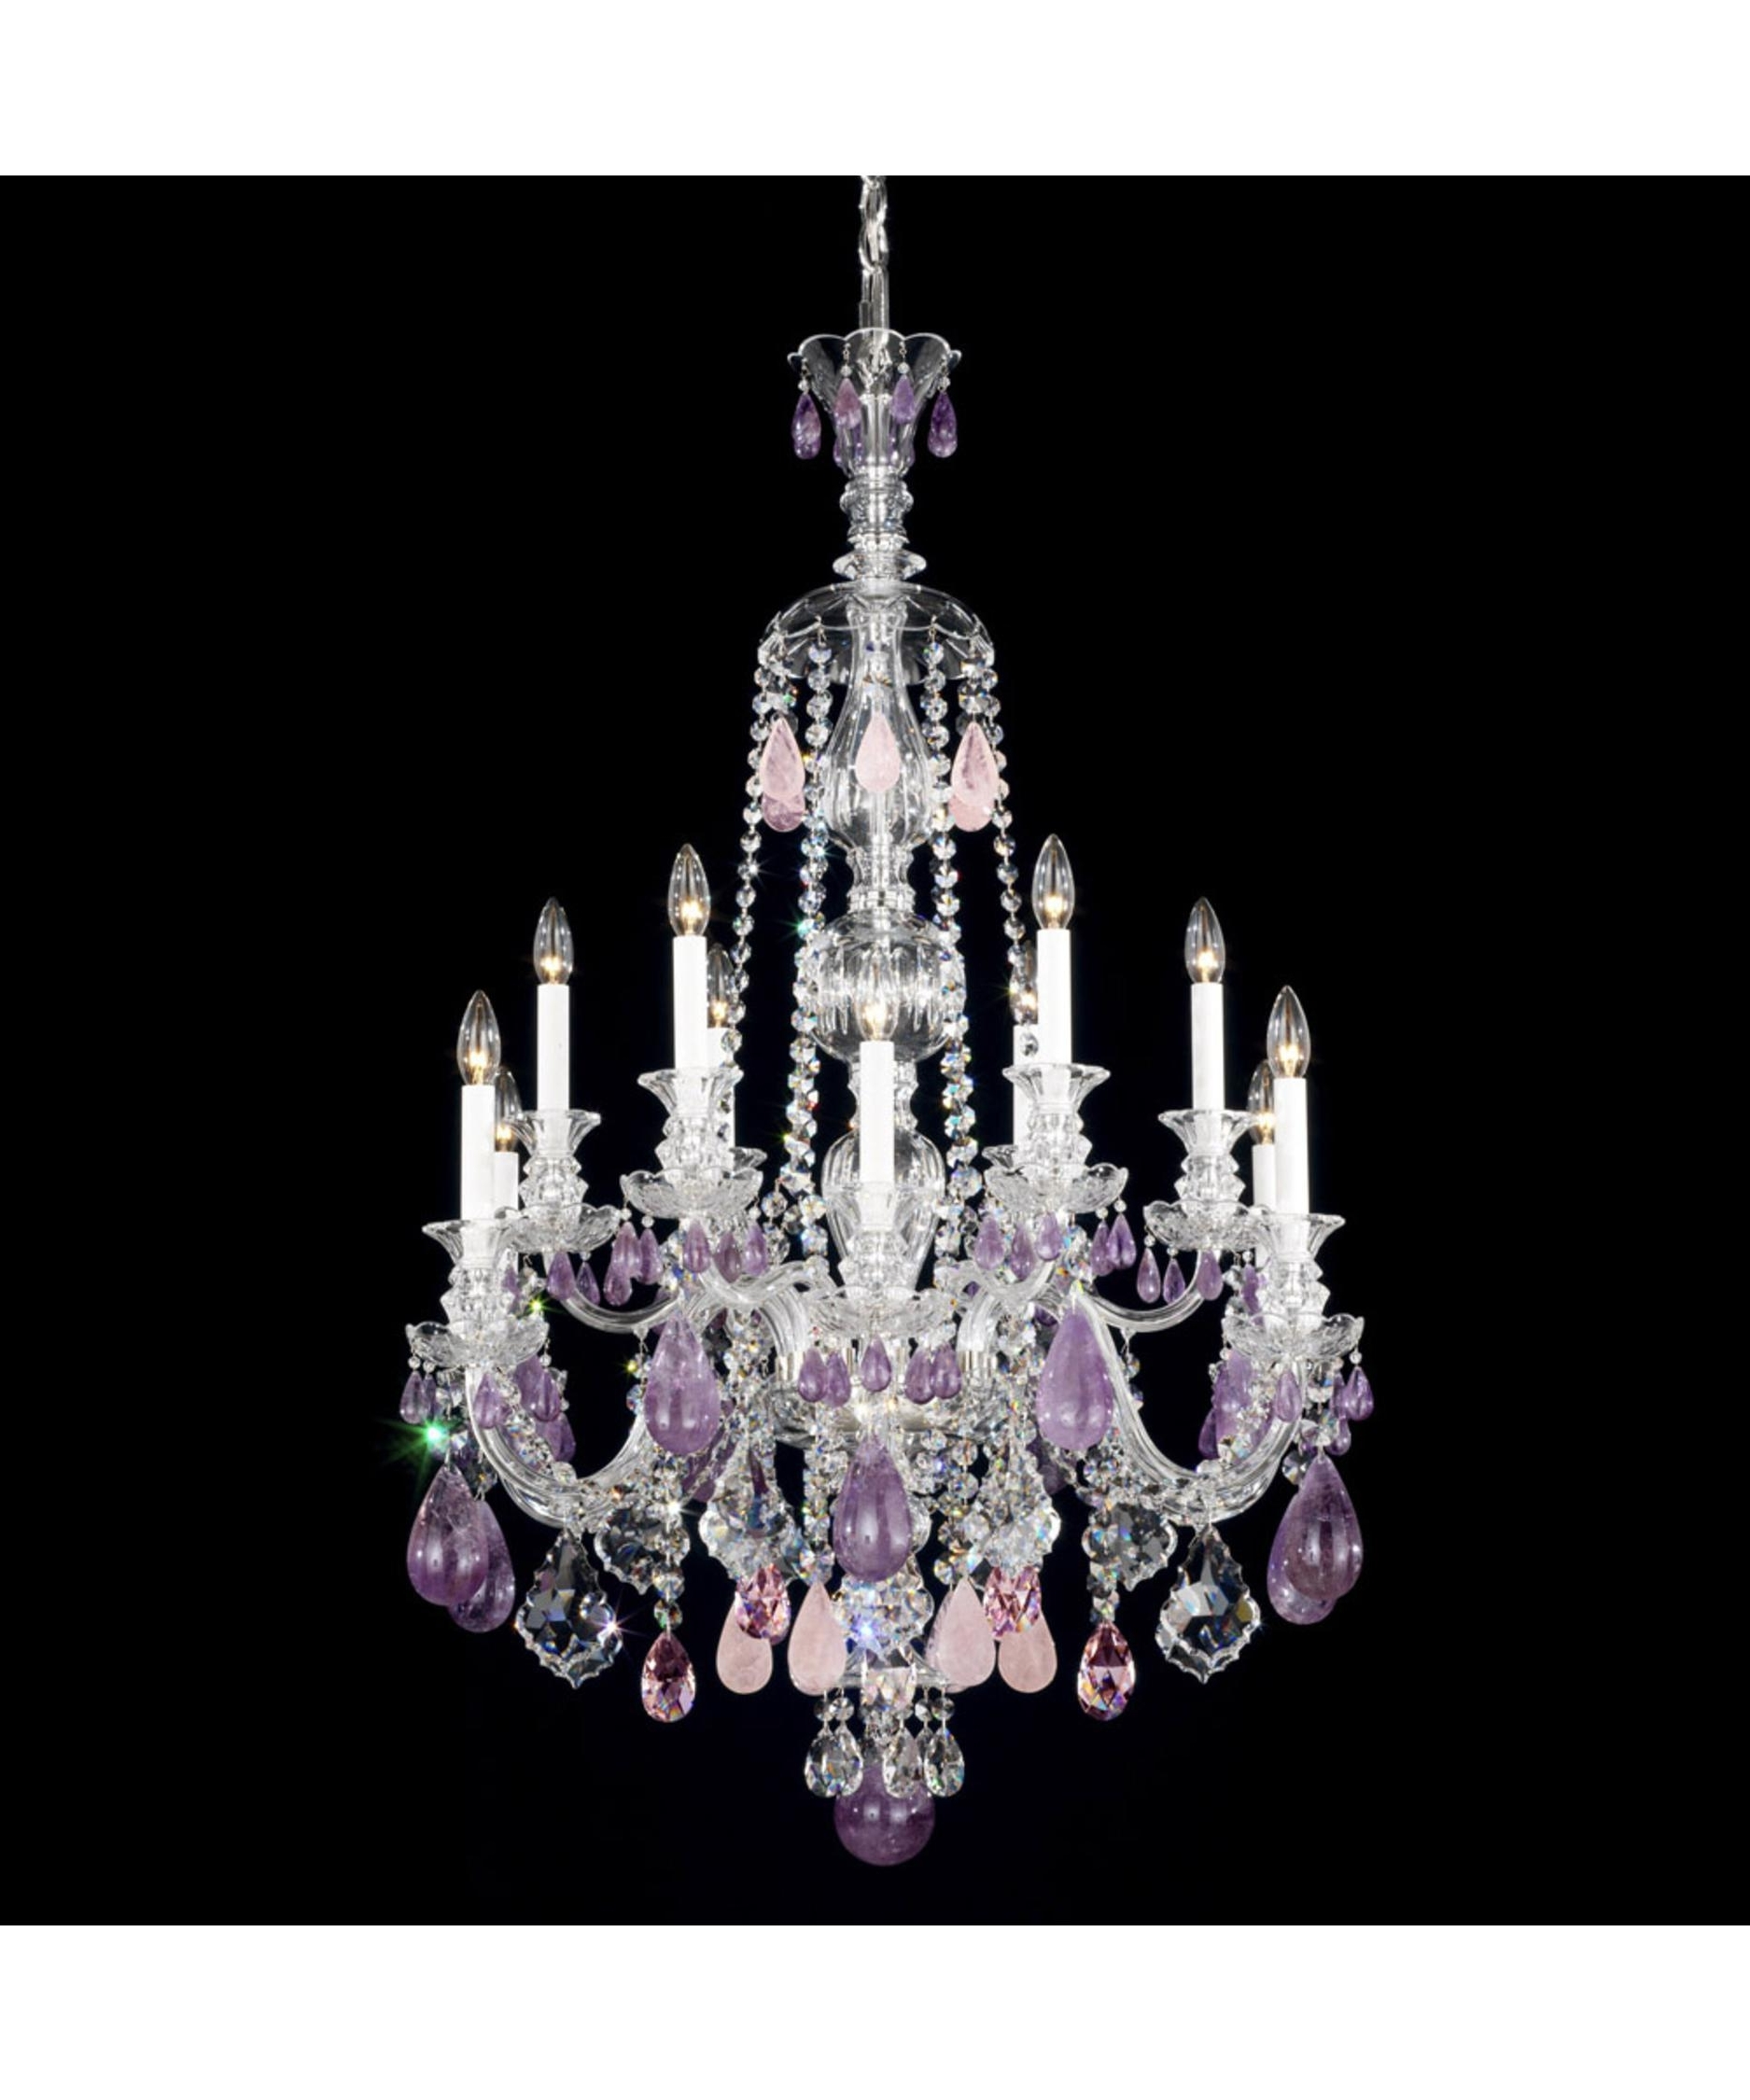 Purple Crystal Chandelier Lighting Pertaining To Well Known Schonbek 5508 Hamilton Rock Crystal 30 Inch Wide 12 Light Chandelier (View 4 of 20)